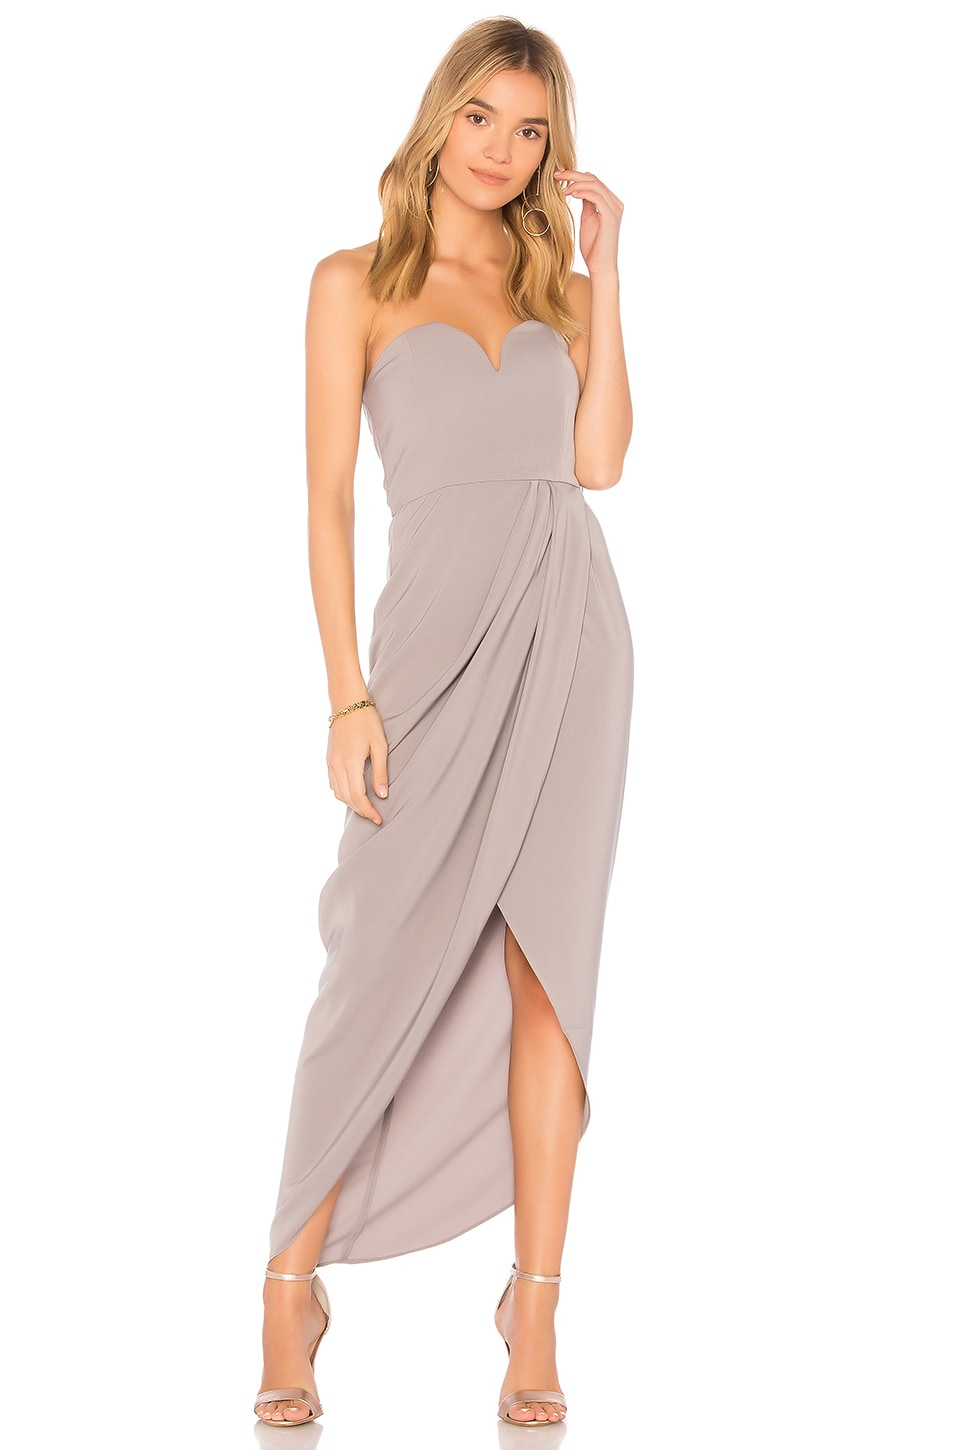 Shona Joy U Wire Bustier Draped Dress in Grey